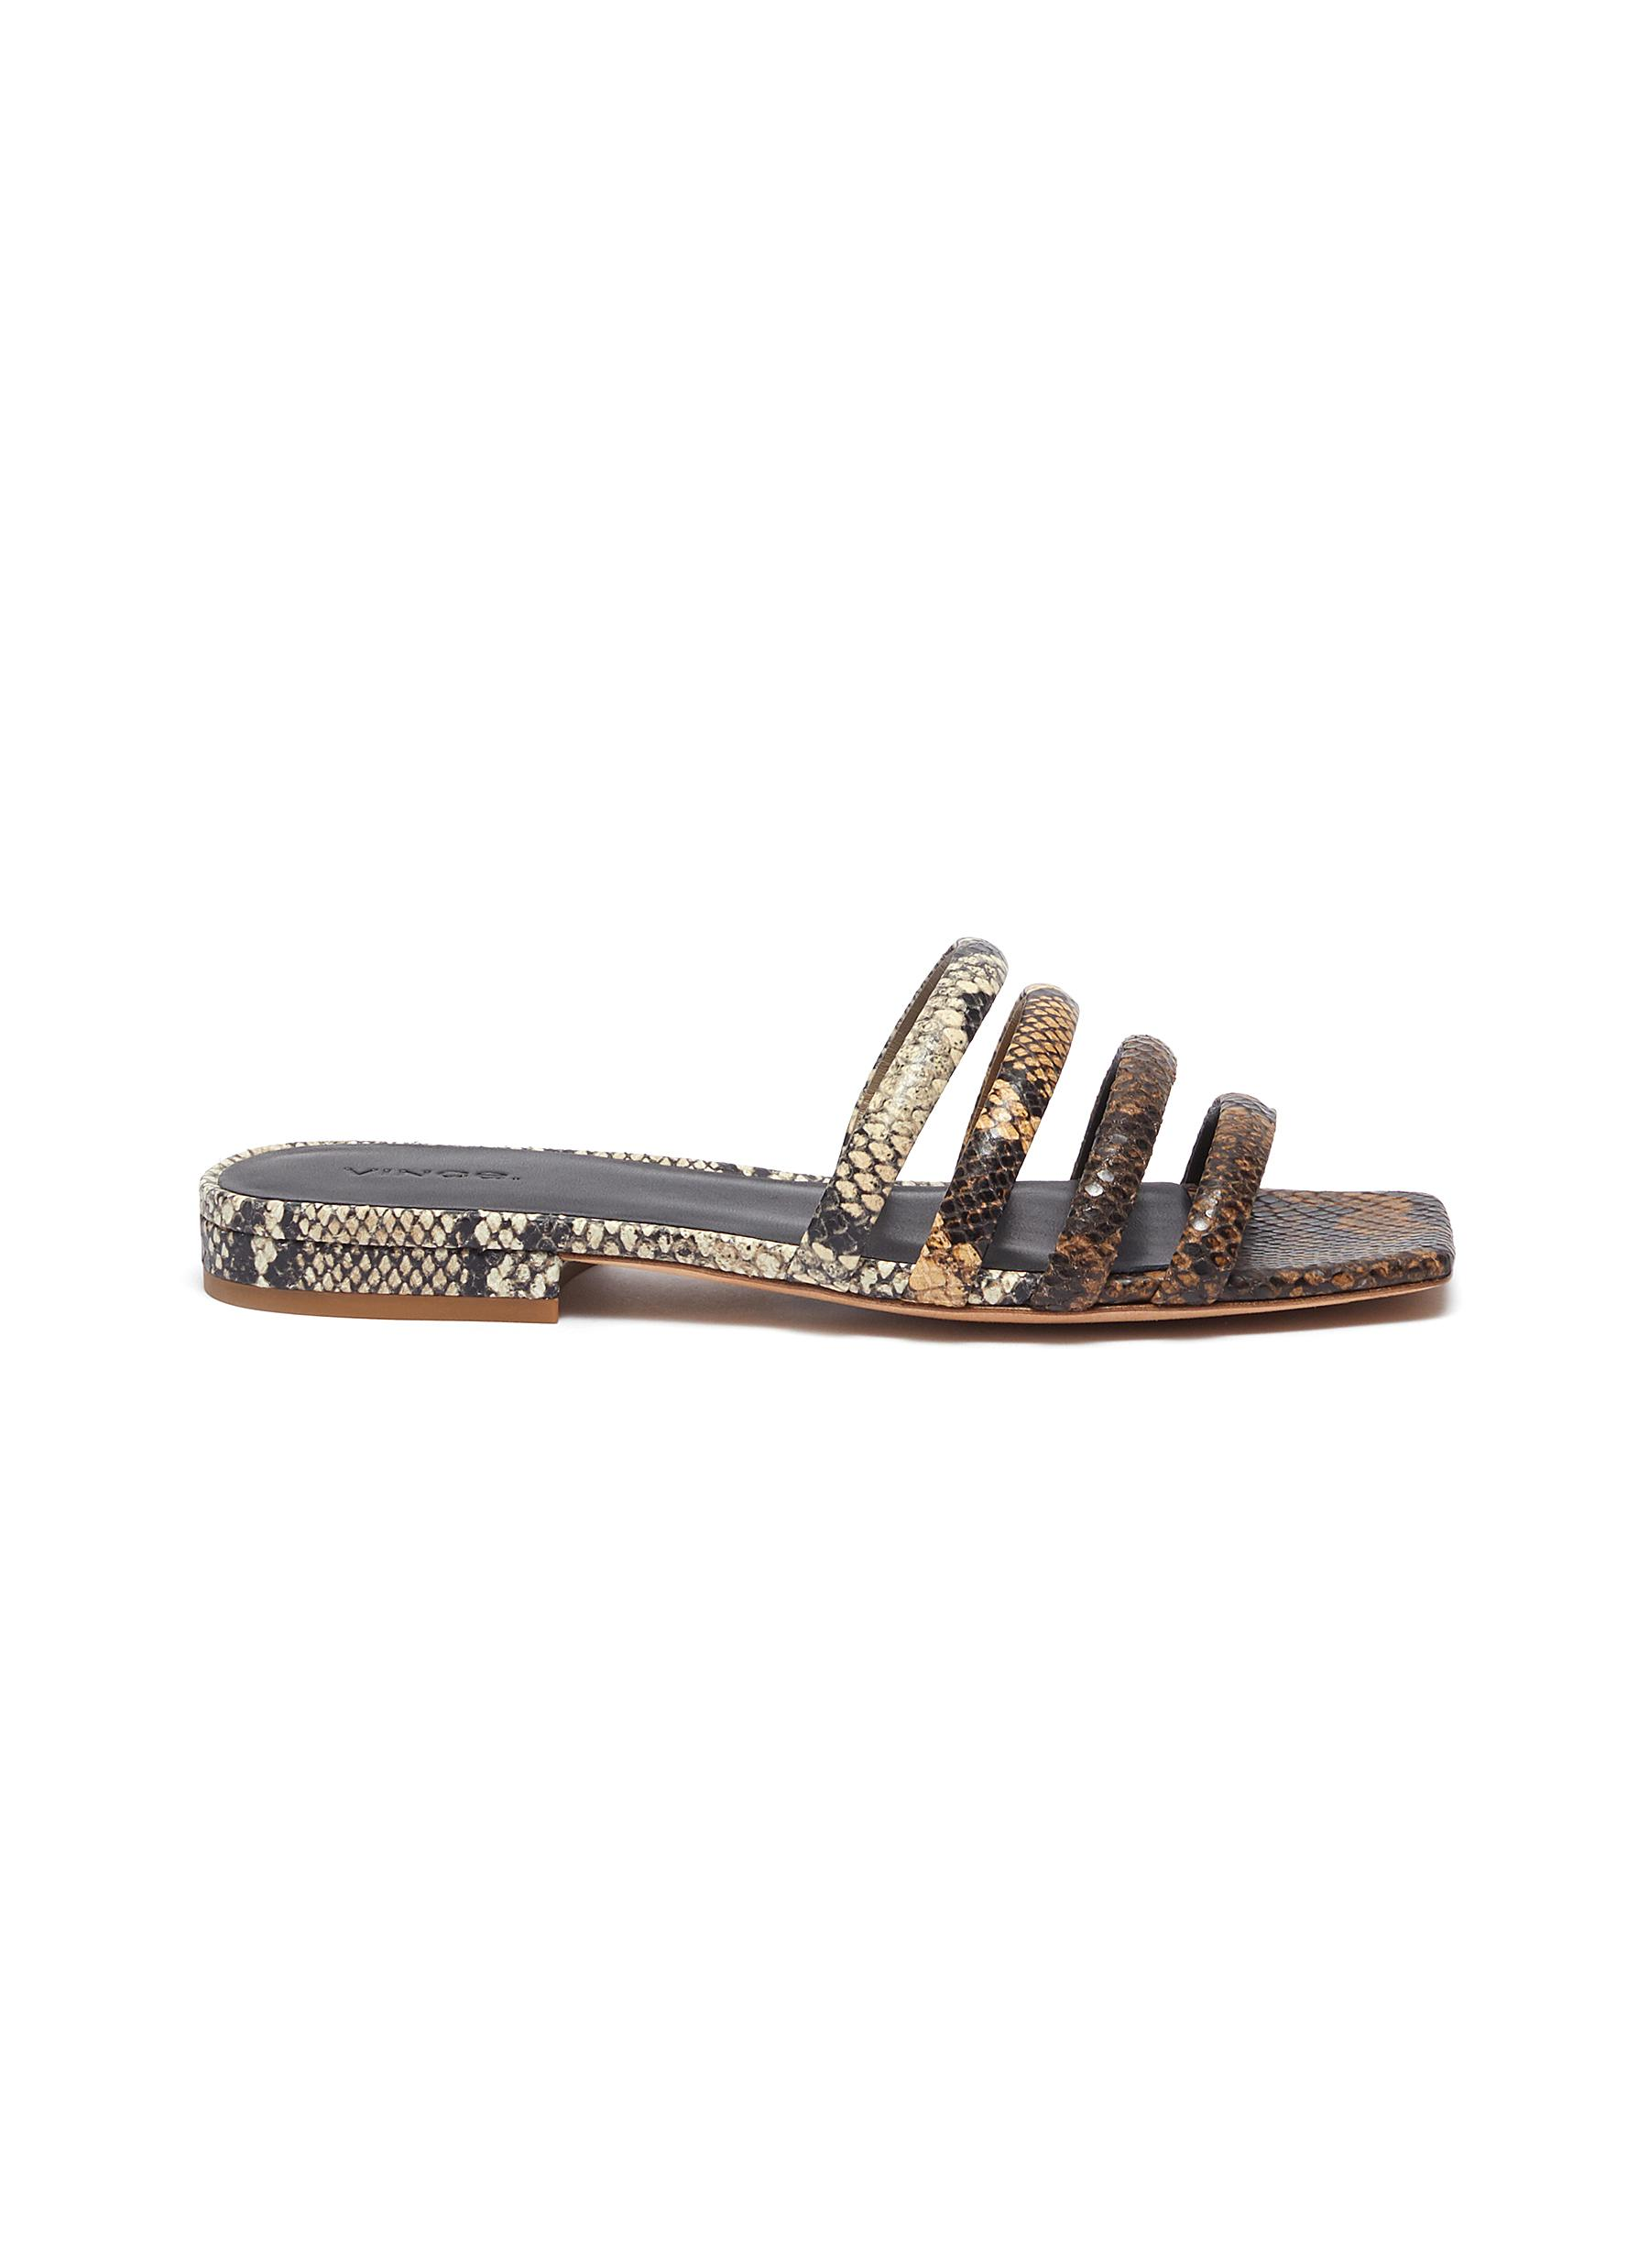 Vince ZAHARA' 4-BAND SNAKE EMBOSSED SQUARE TOELEATHER SANDALS